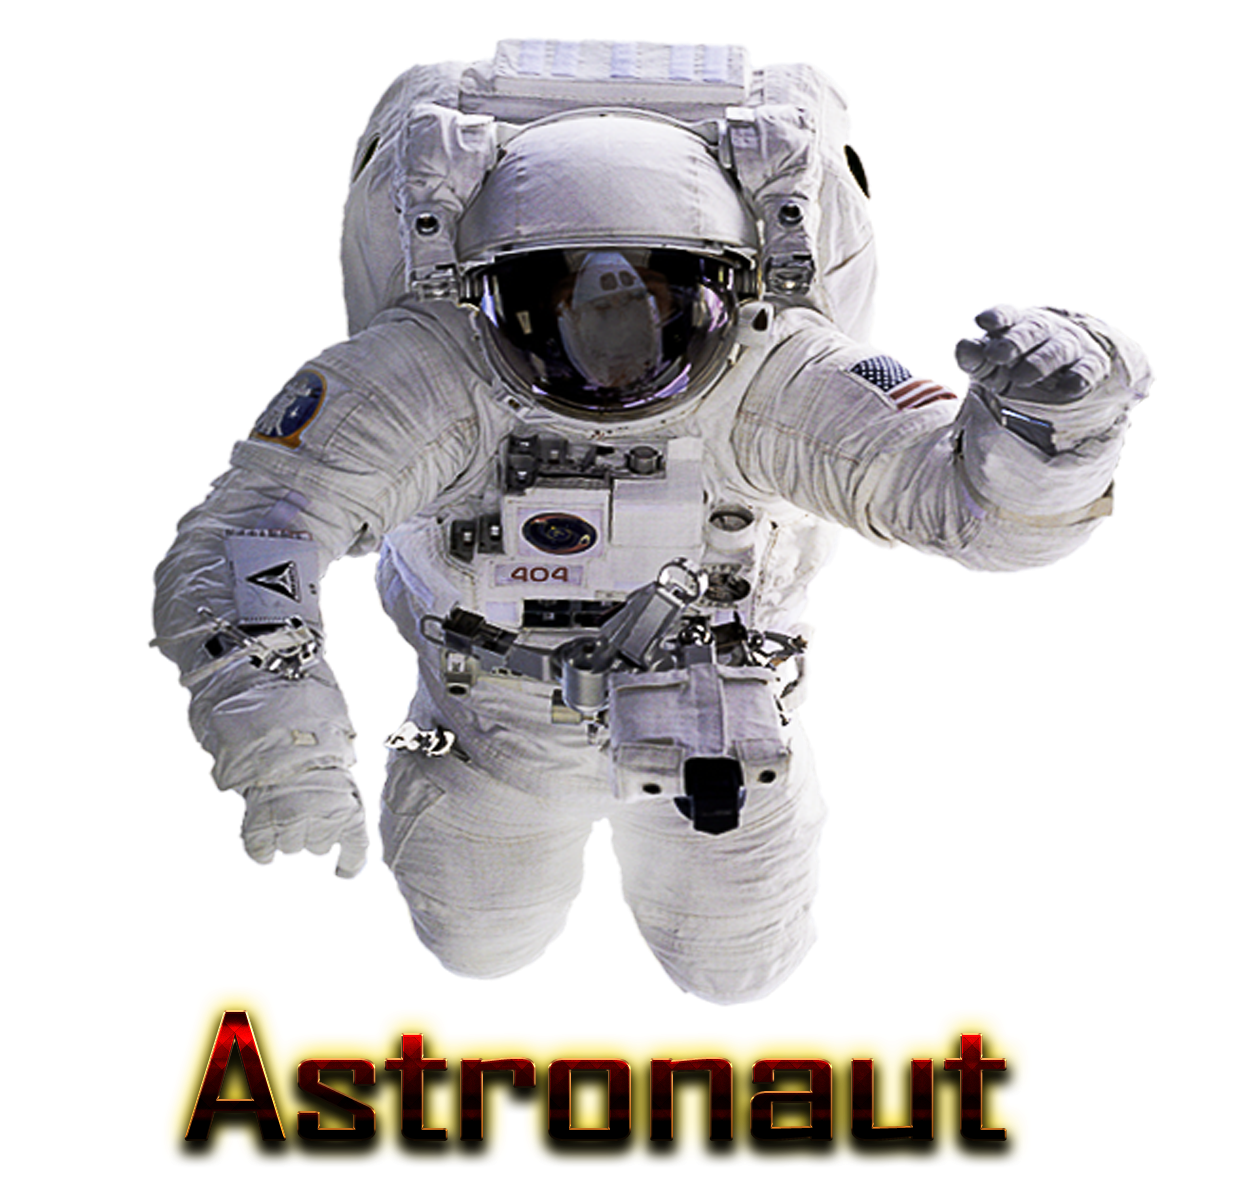 Astronaut PNG HD.